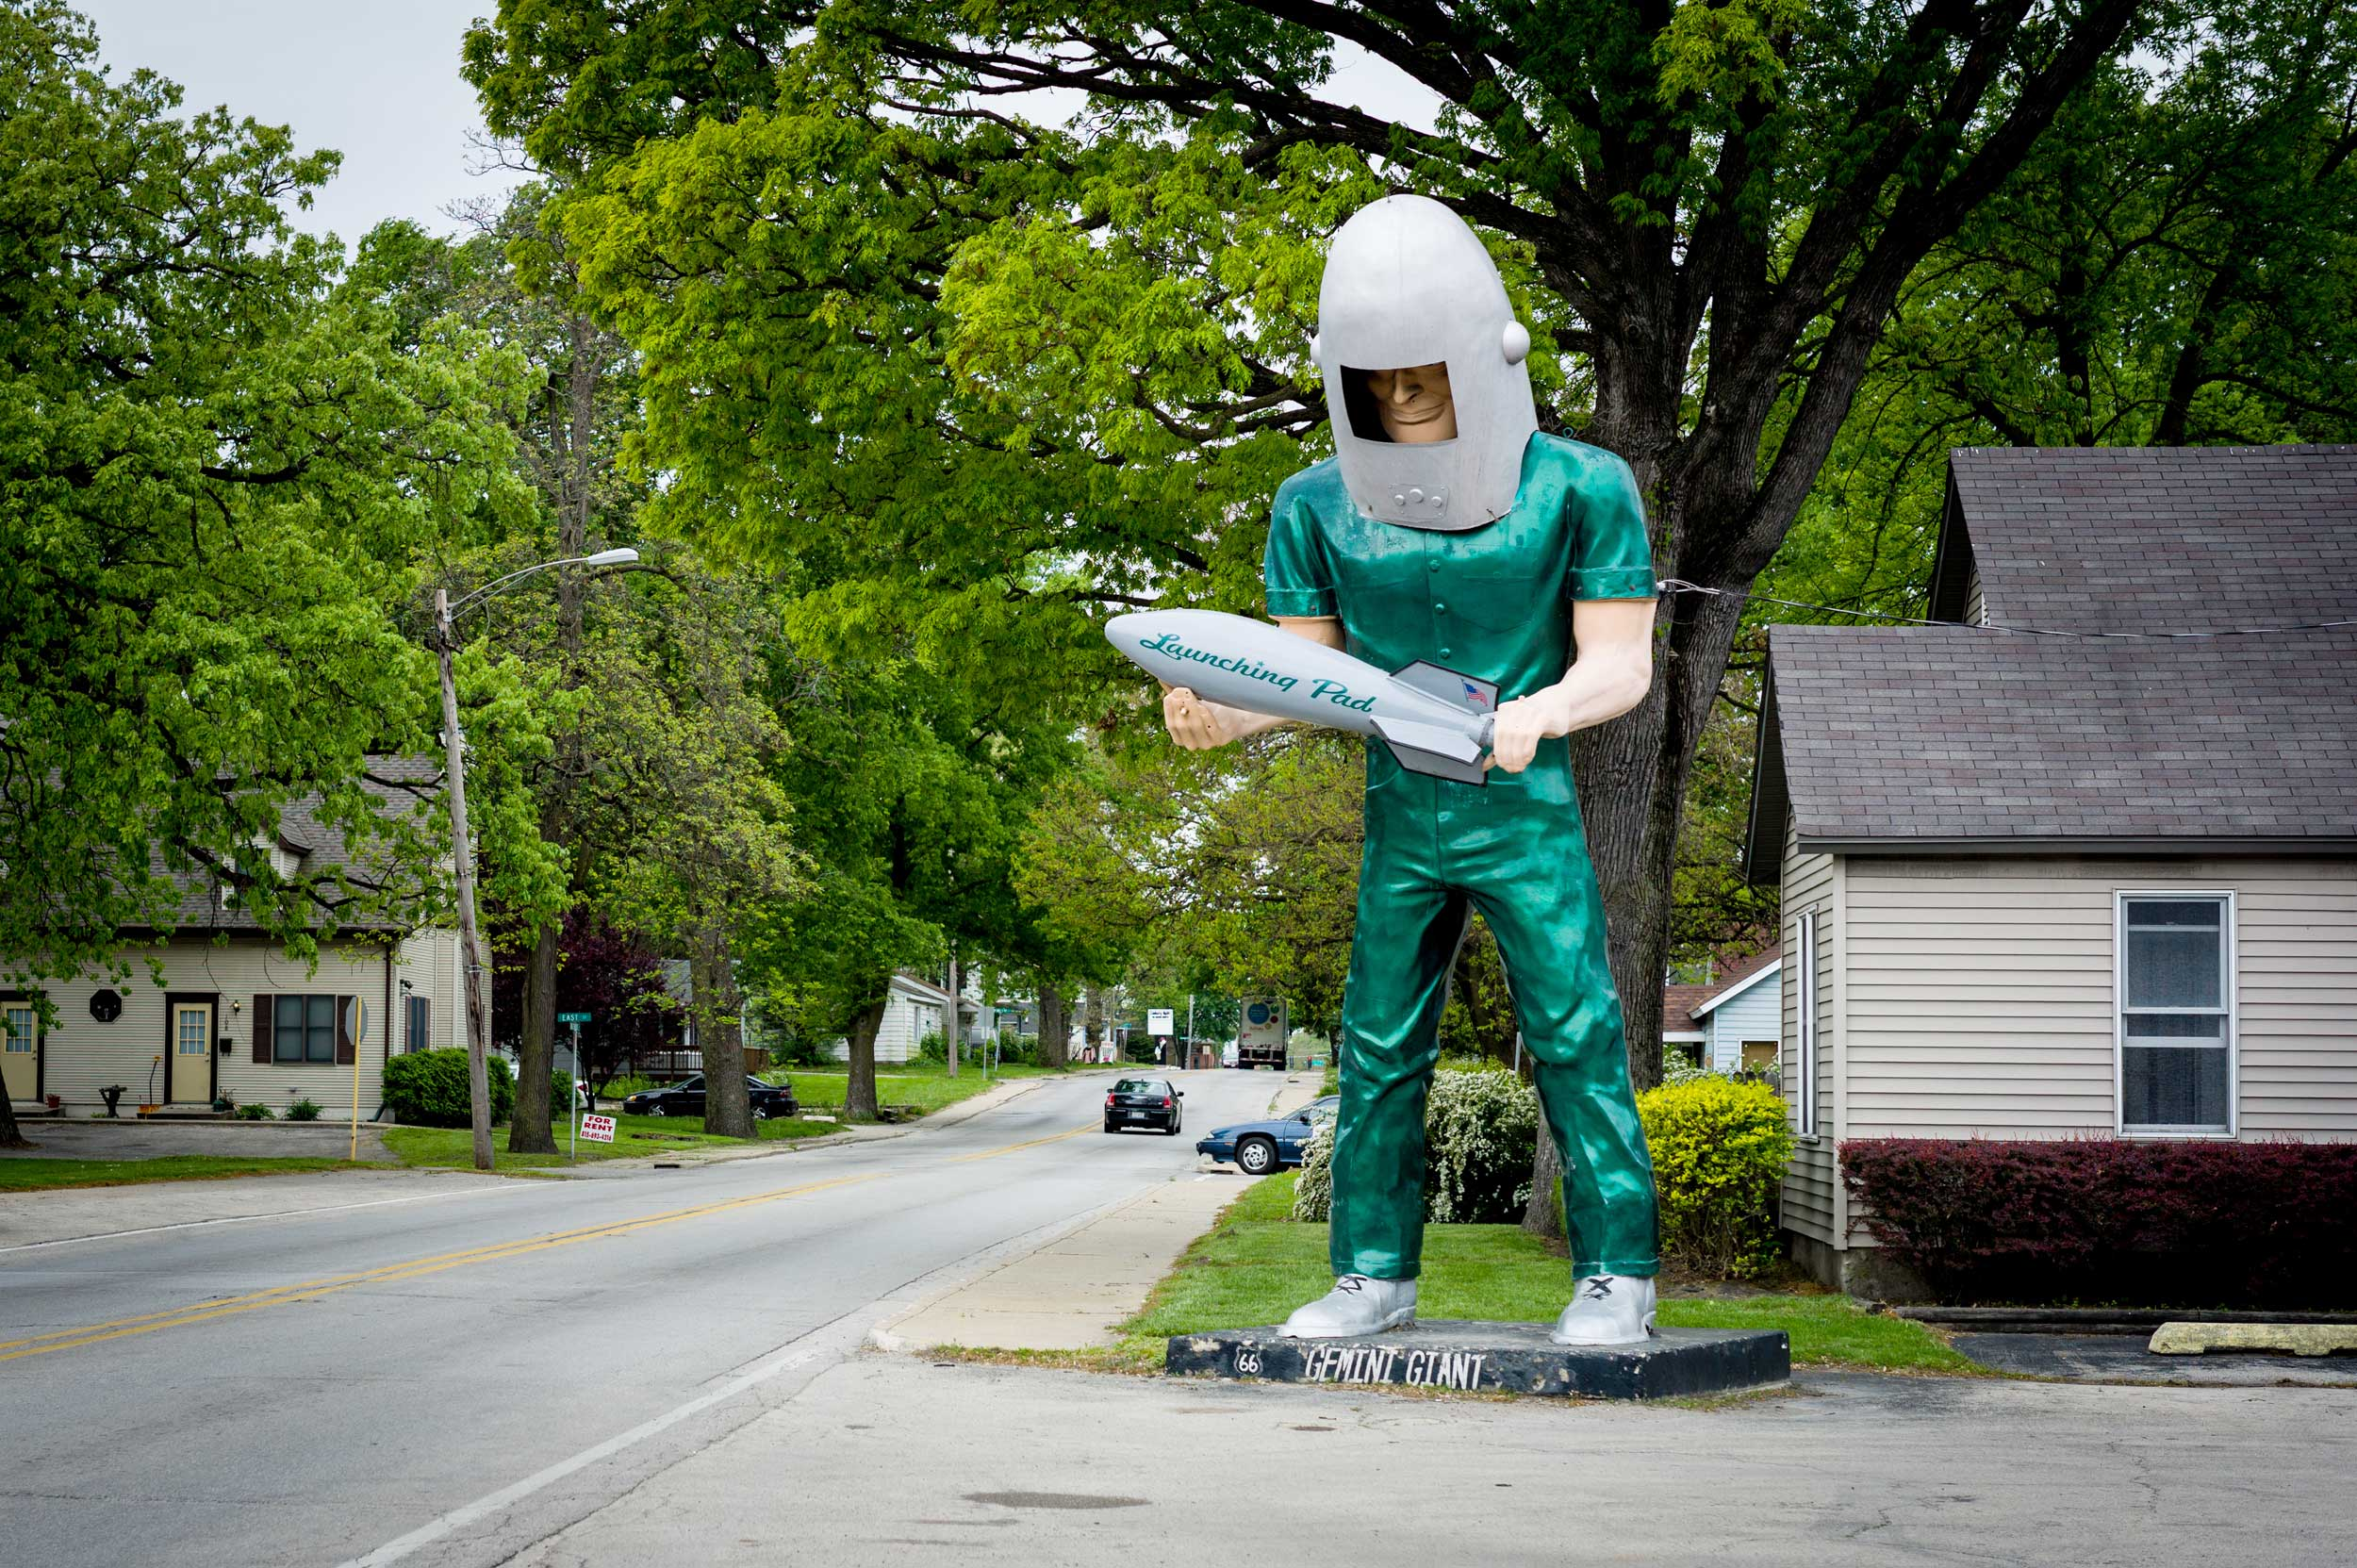 Giant statue of a man in a green spacesuit and helmet holding a rocket on a street corner with some cars in Illinois